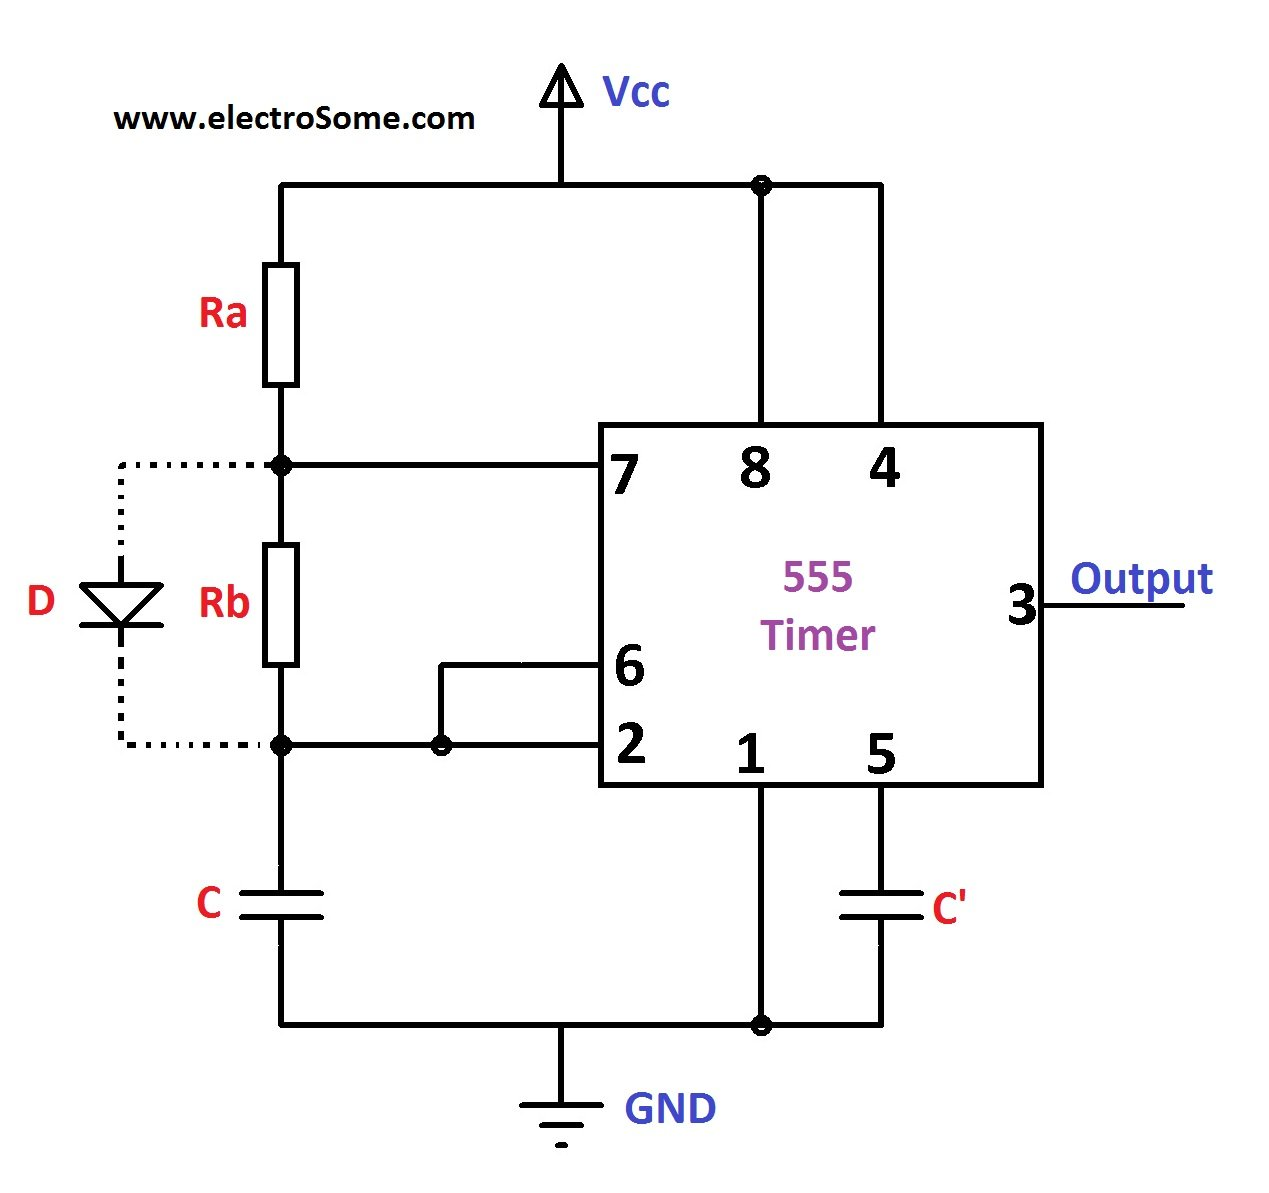 Ic 555 Circuit Diagram Great Installation Of Wiring Dpdt Relay Switch Double Pole Throw Engineersgarage Astable Multivibrator Using Timer Rh Electrosome Com Delay